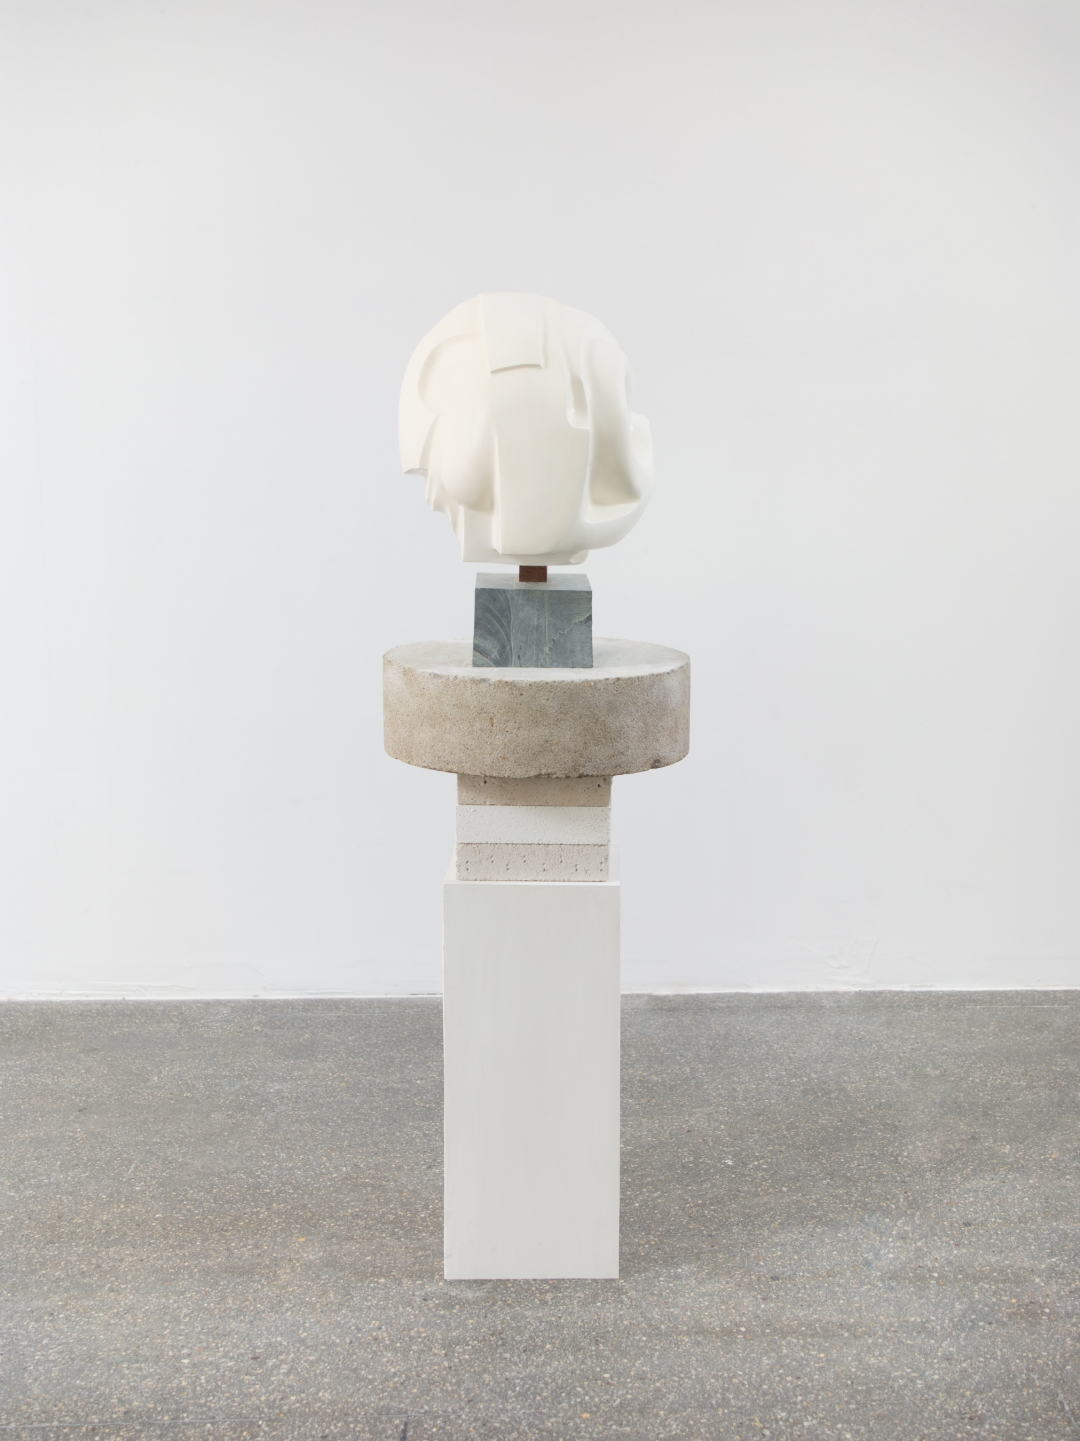 Christina Kruse, <i>Will o' the wisp [detail]</i>, 2021, plaster, wax, wood, metal, concrete, soapstone, Ytong building blocks (sculpture only), 52 x 18 x 20 in. (132.1 x 45.7 x 50.8 cm)